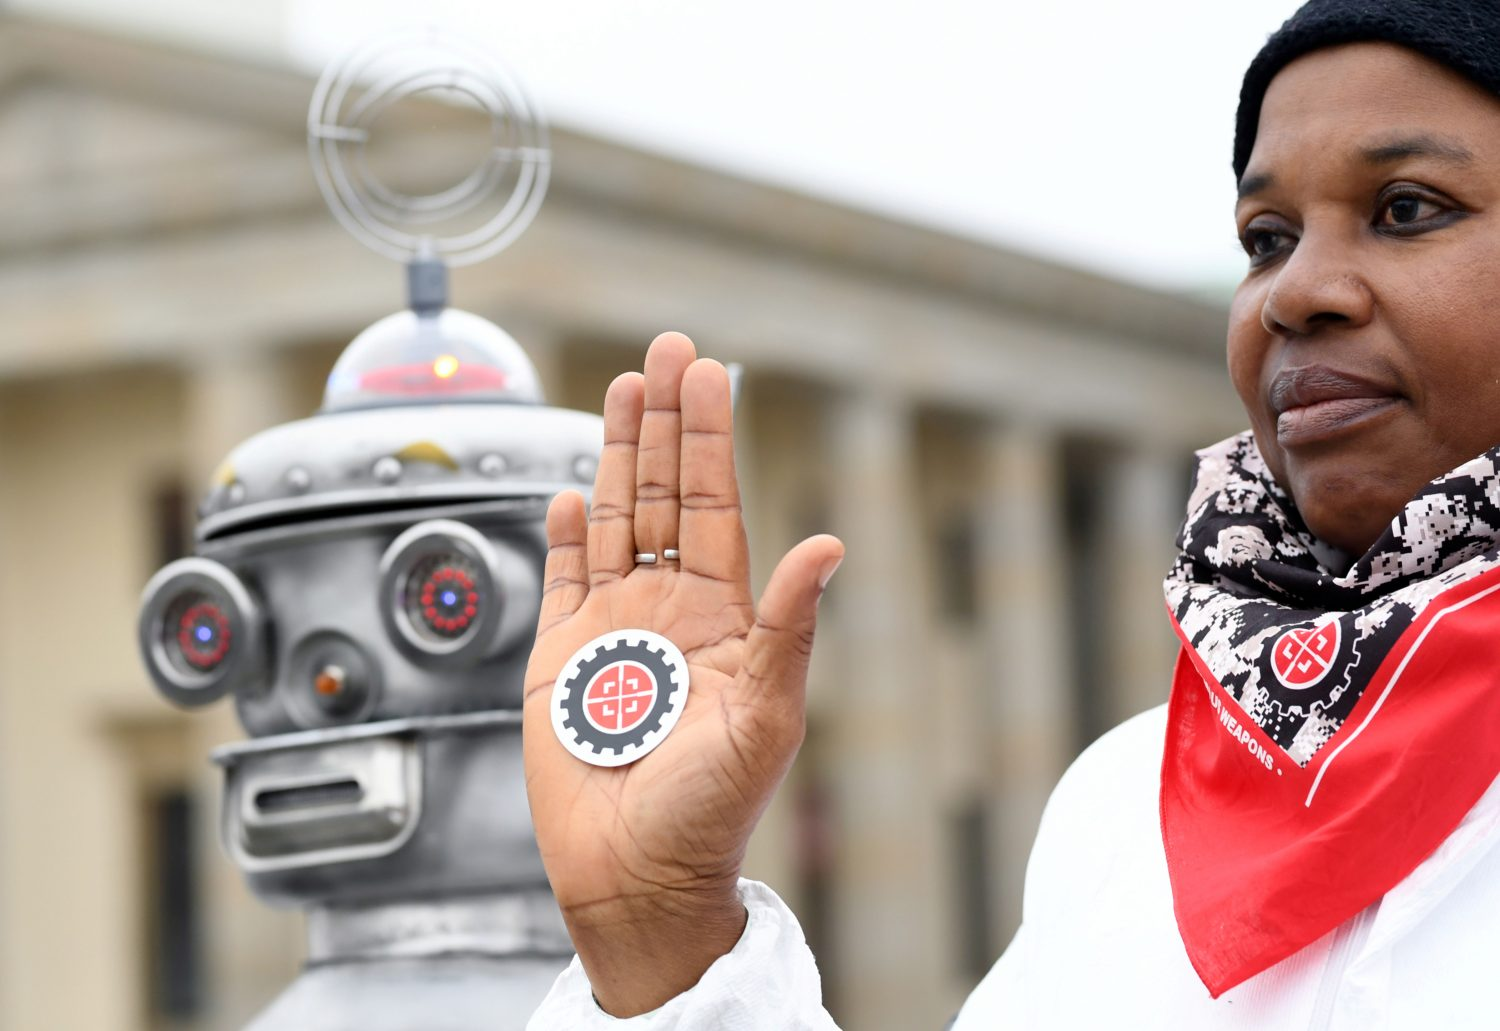 FILE PHOTO: An activist from the Campaign to Stop Killer Robots, a coalition of non-governmental organisations opposing lethal autonomous weapons or so-called 'killer robots', protests at Brandenburg Gate in Berlin, Germany, March, 21, 2019. REUTERS/Annegret Hilse/File Photo